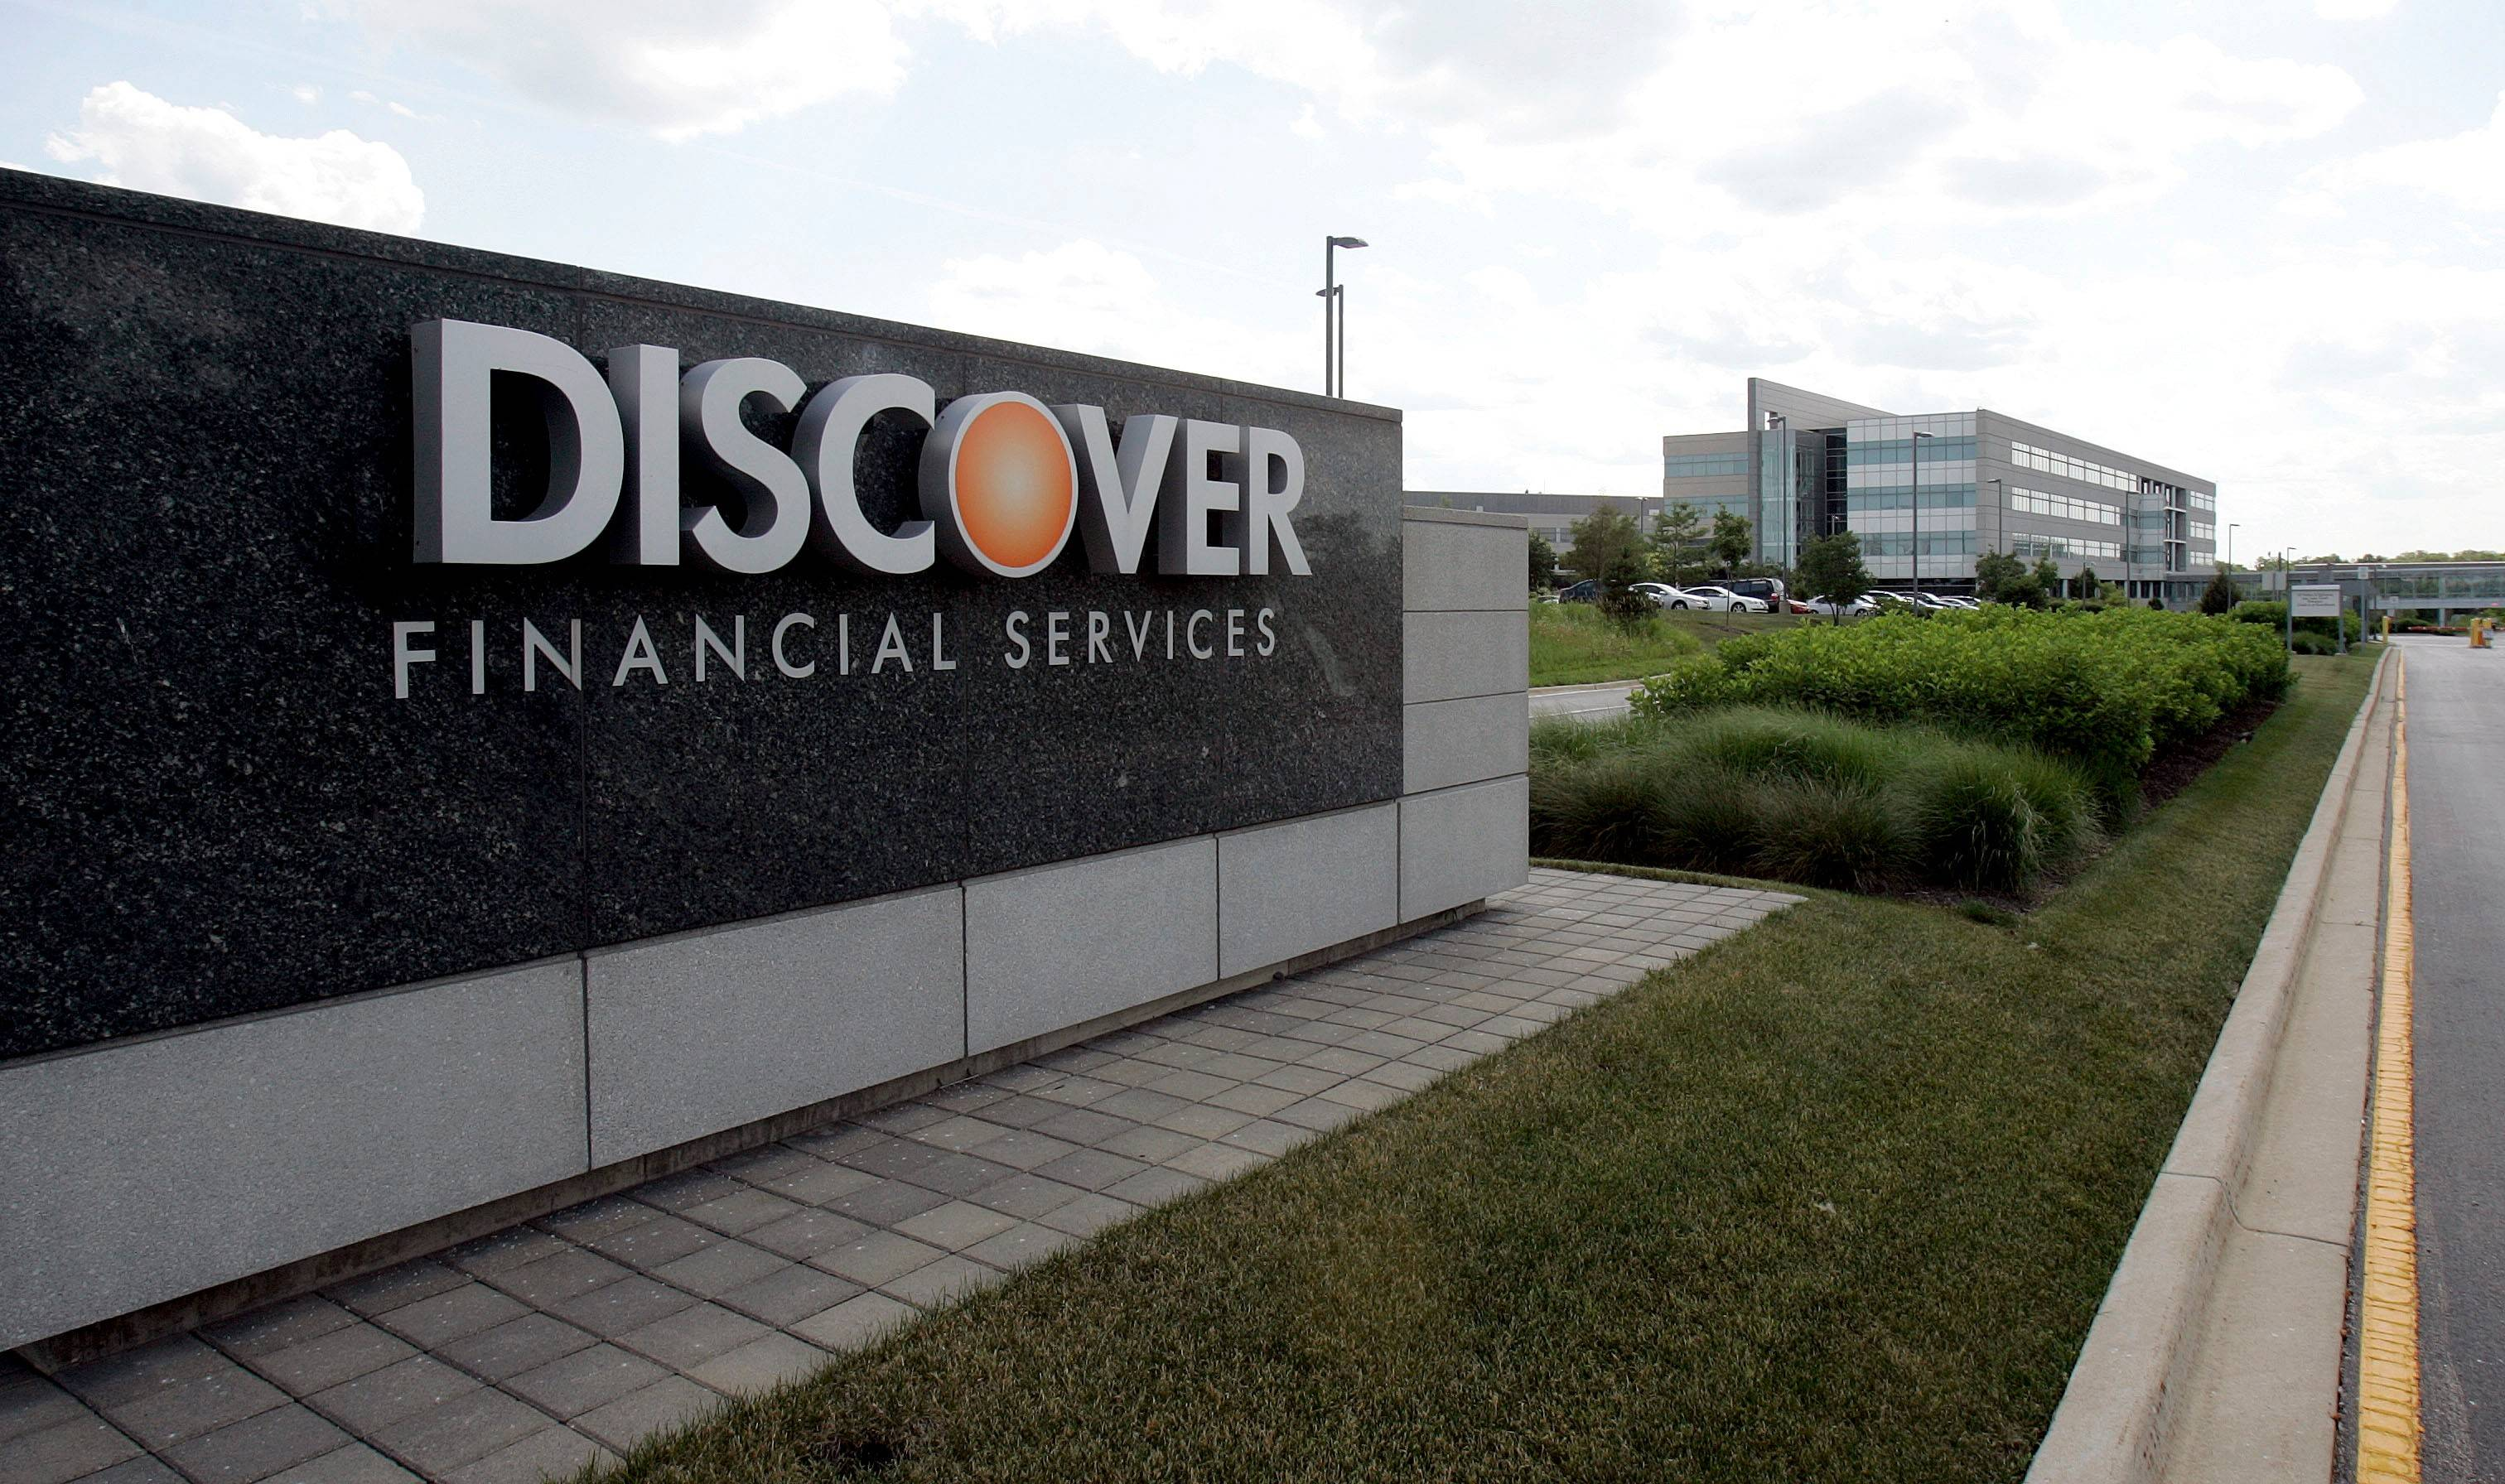 Riverwoods-based Discover Financial Services, the credit-card lender that boosted dividends after passing U.S. stress tests, posted a profit that beat analysts' estimates as more customers kept up with their bills.